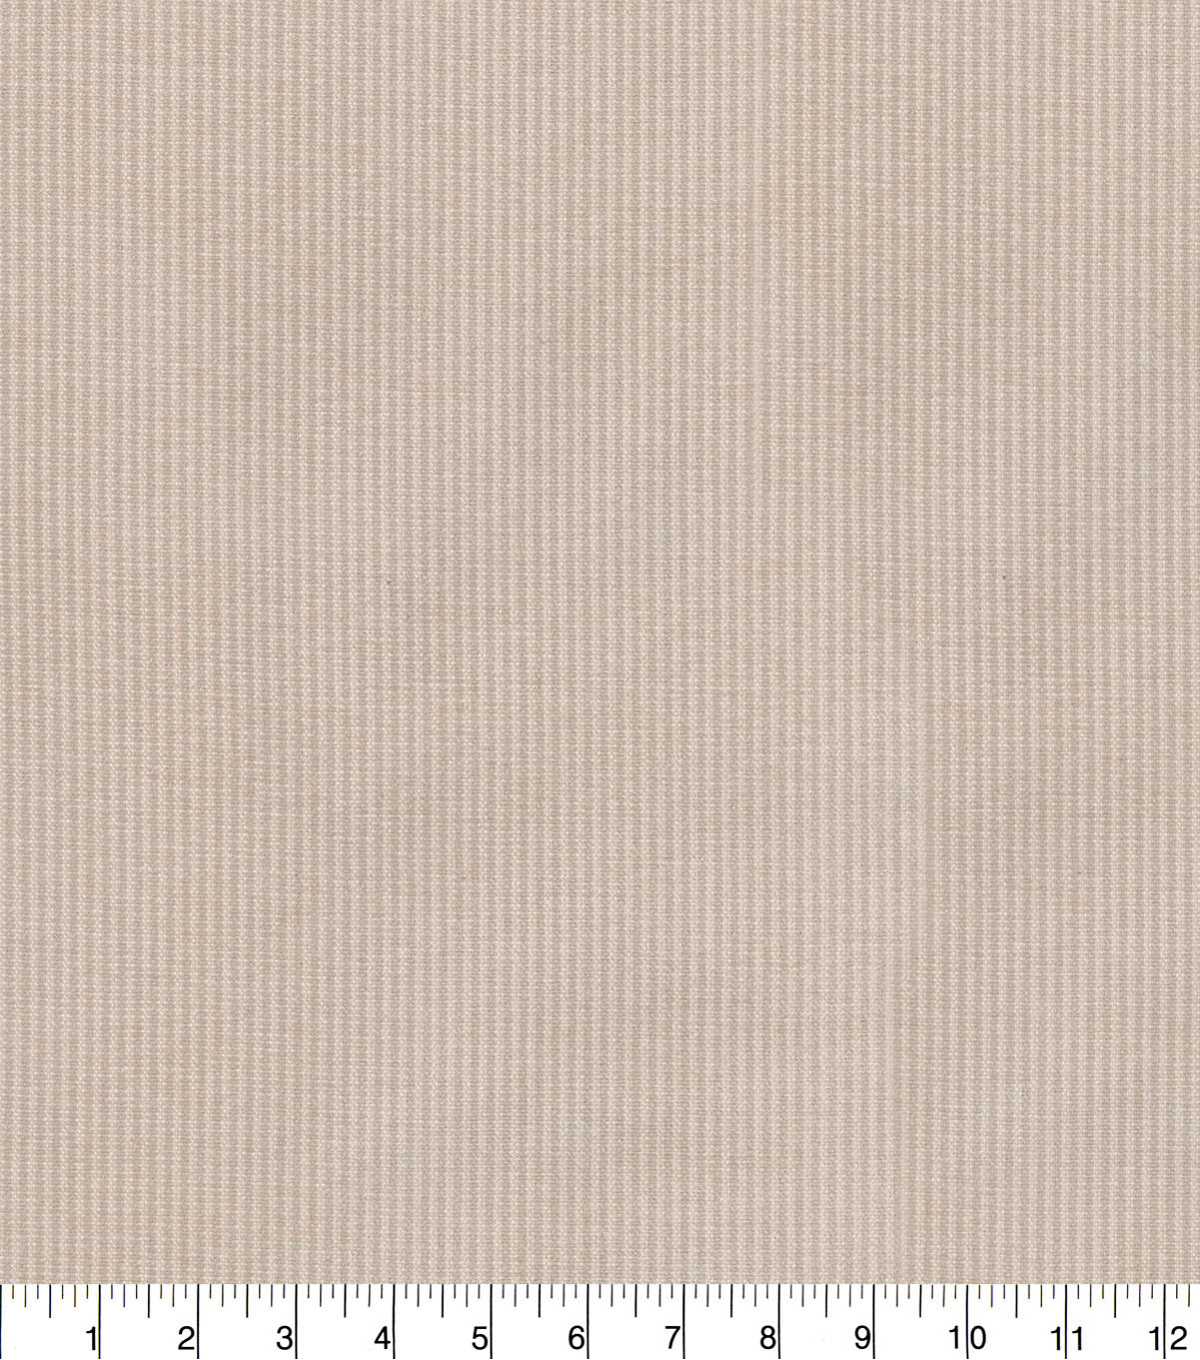 PKL Studio Upholstery Décor Fabric 9\u0022x9\u0022 Swatch-Slim Fit Straw